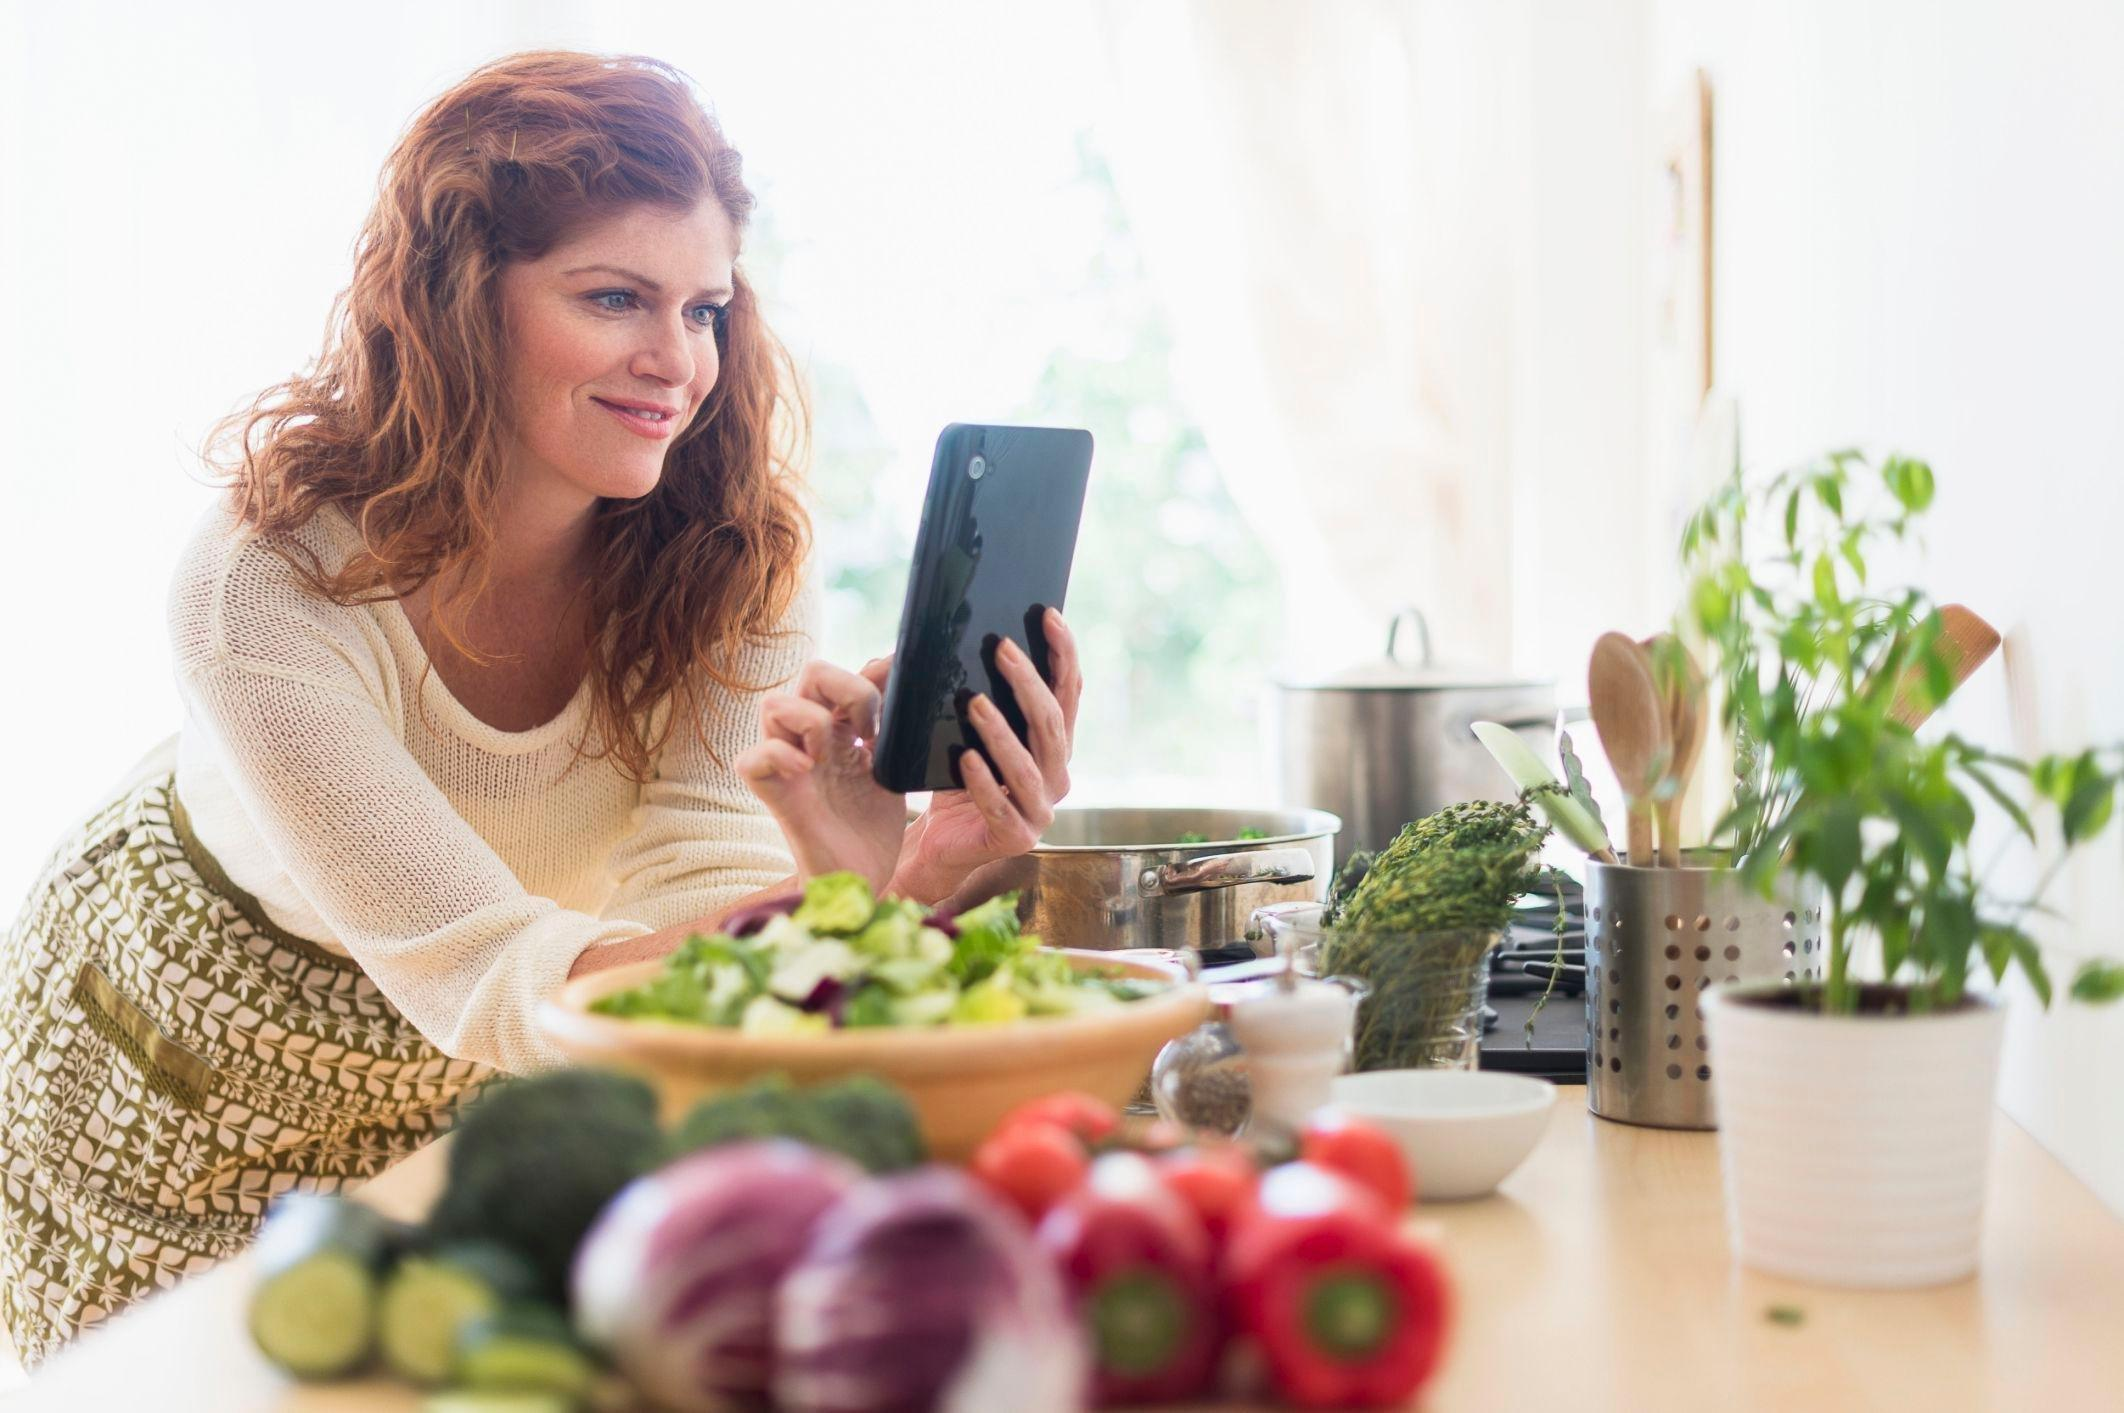 Top 4 Apps For Managing Diabetes